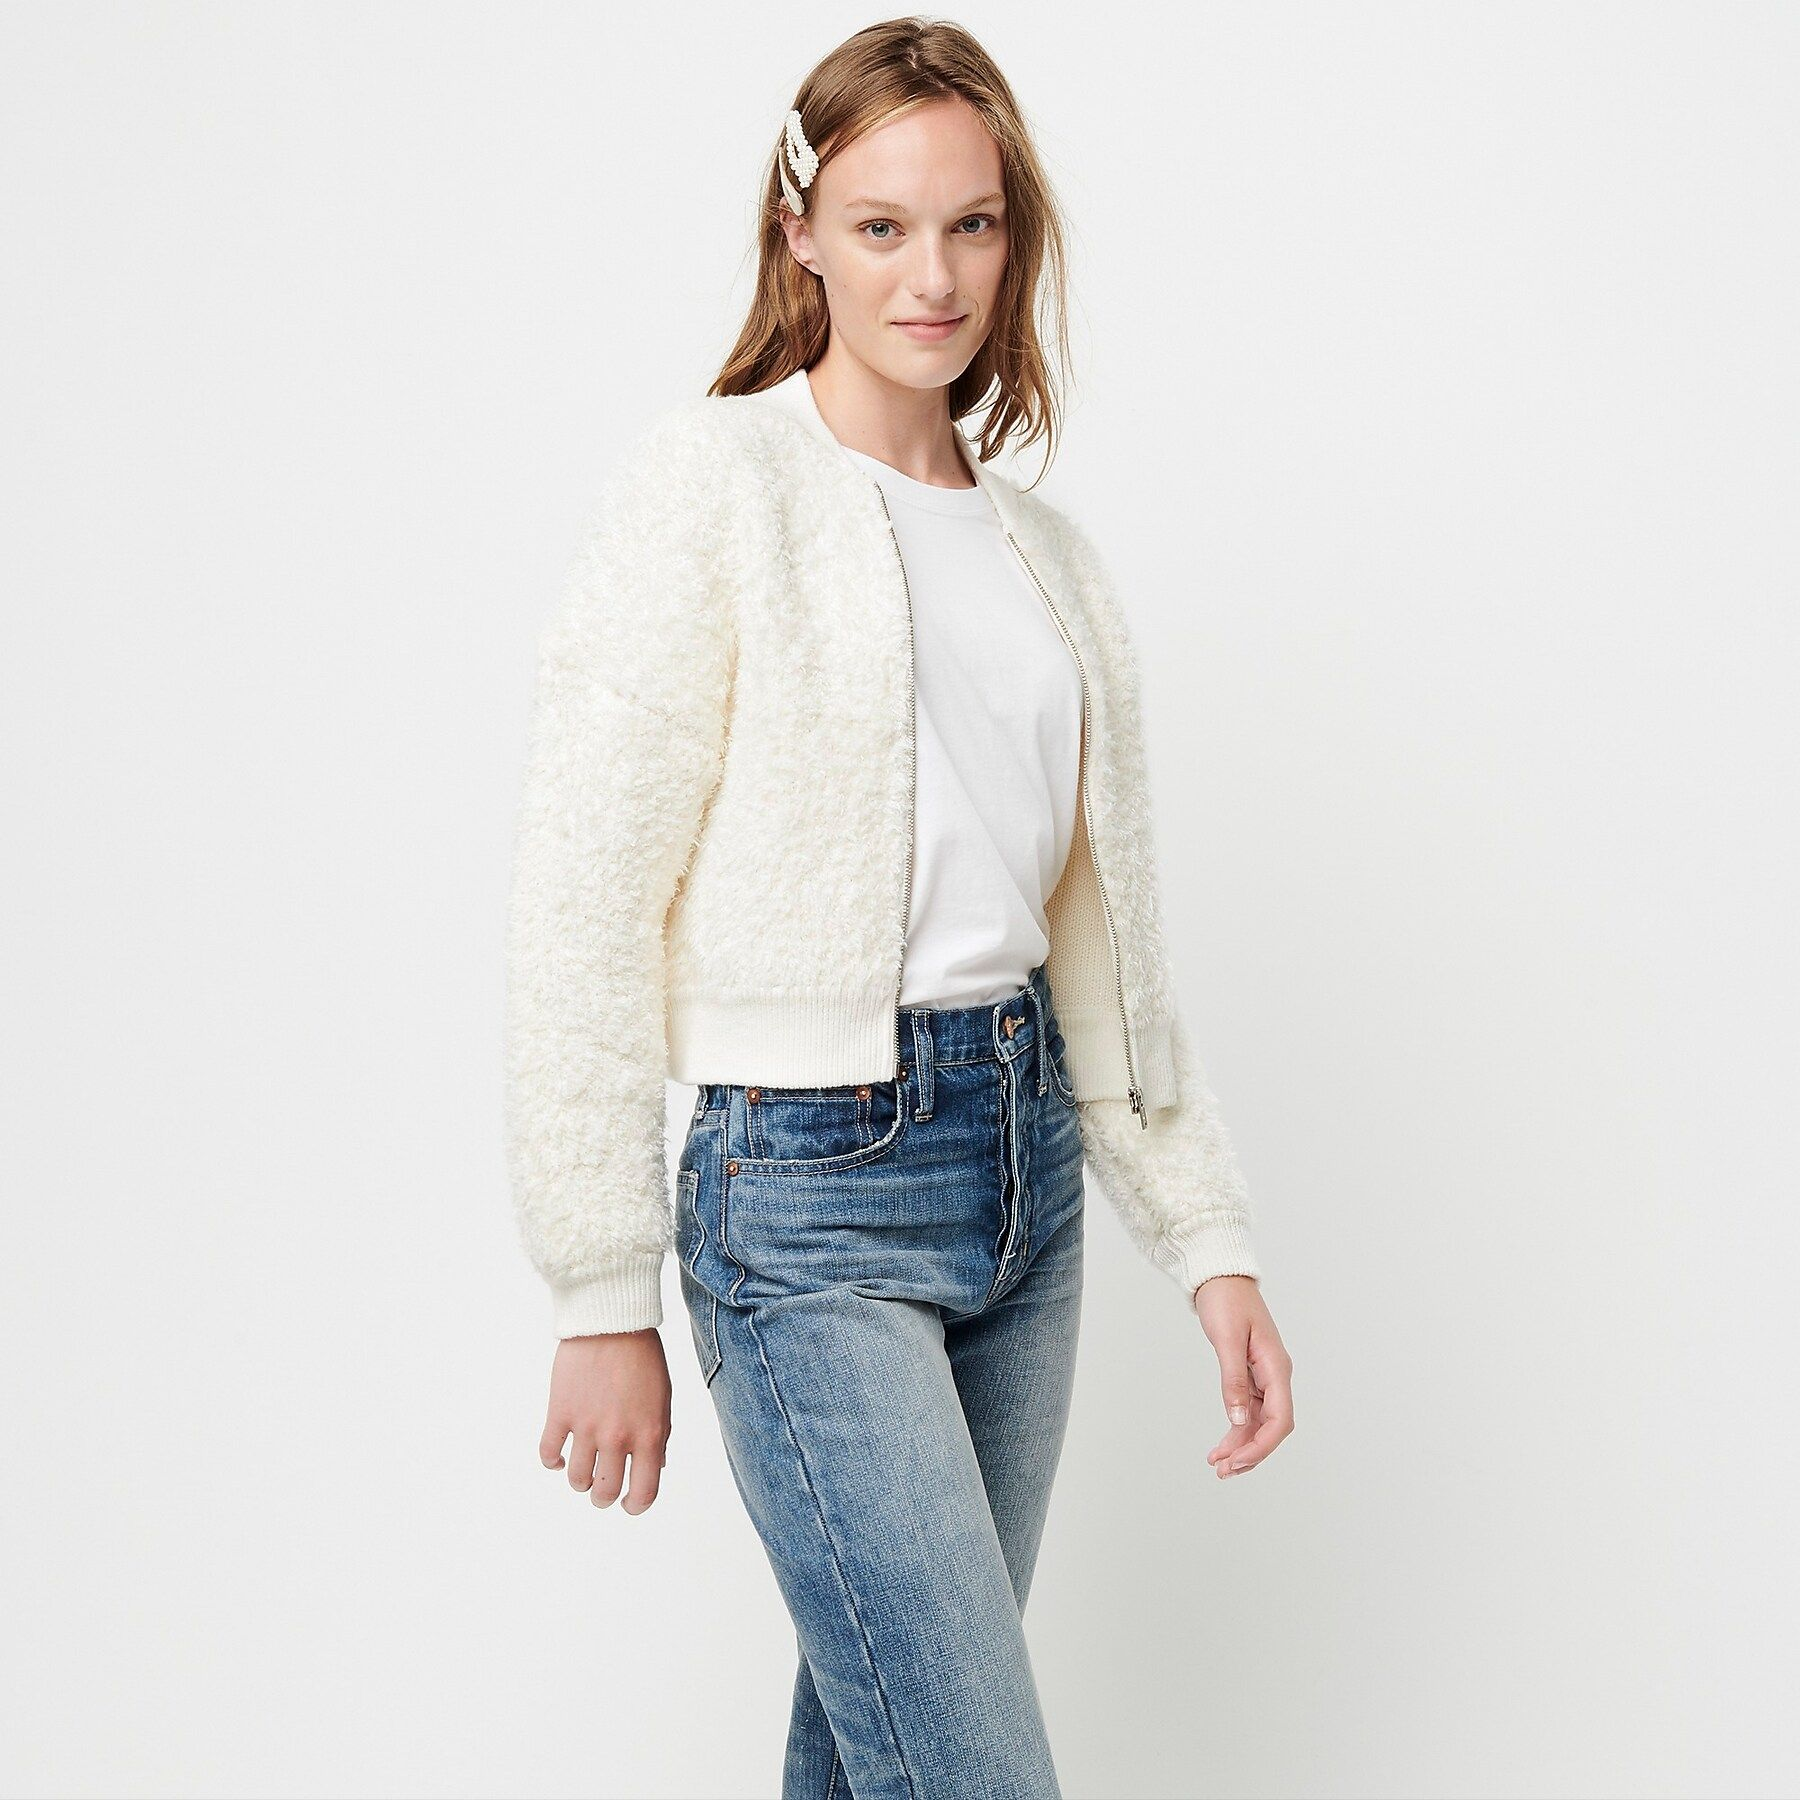 J Crew Fuzzy Bomber Sweater Jacket Sweaters Clothes Sweaters For Women [ 1800 x 1800 Pixel ]